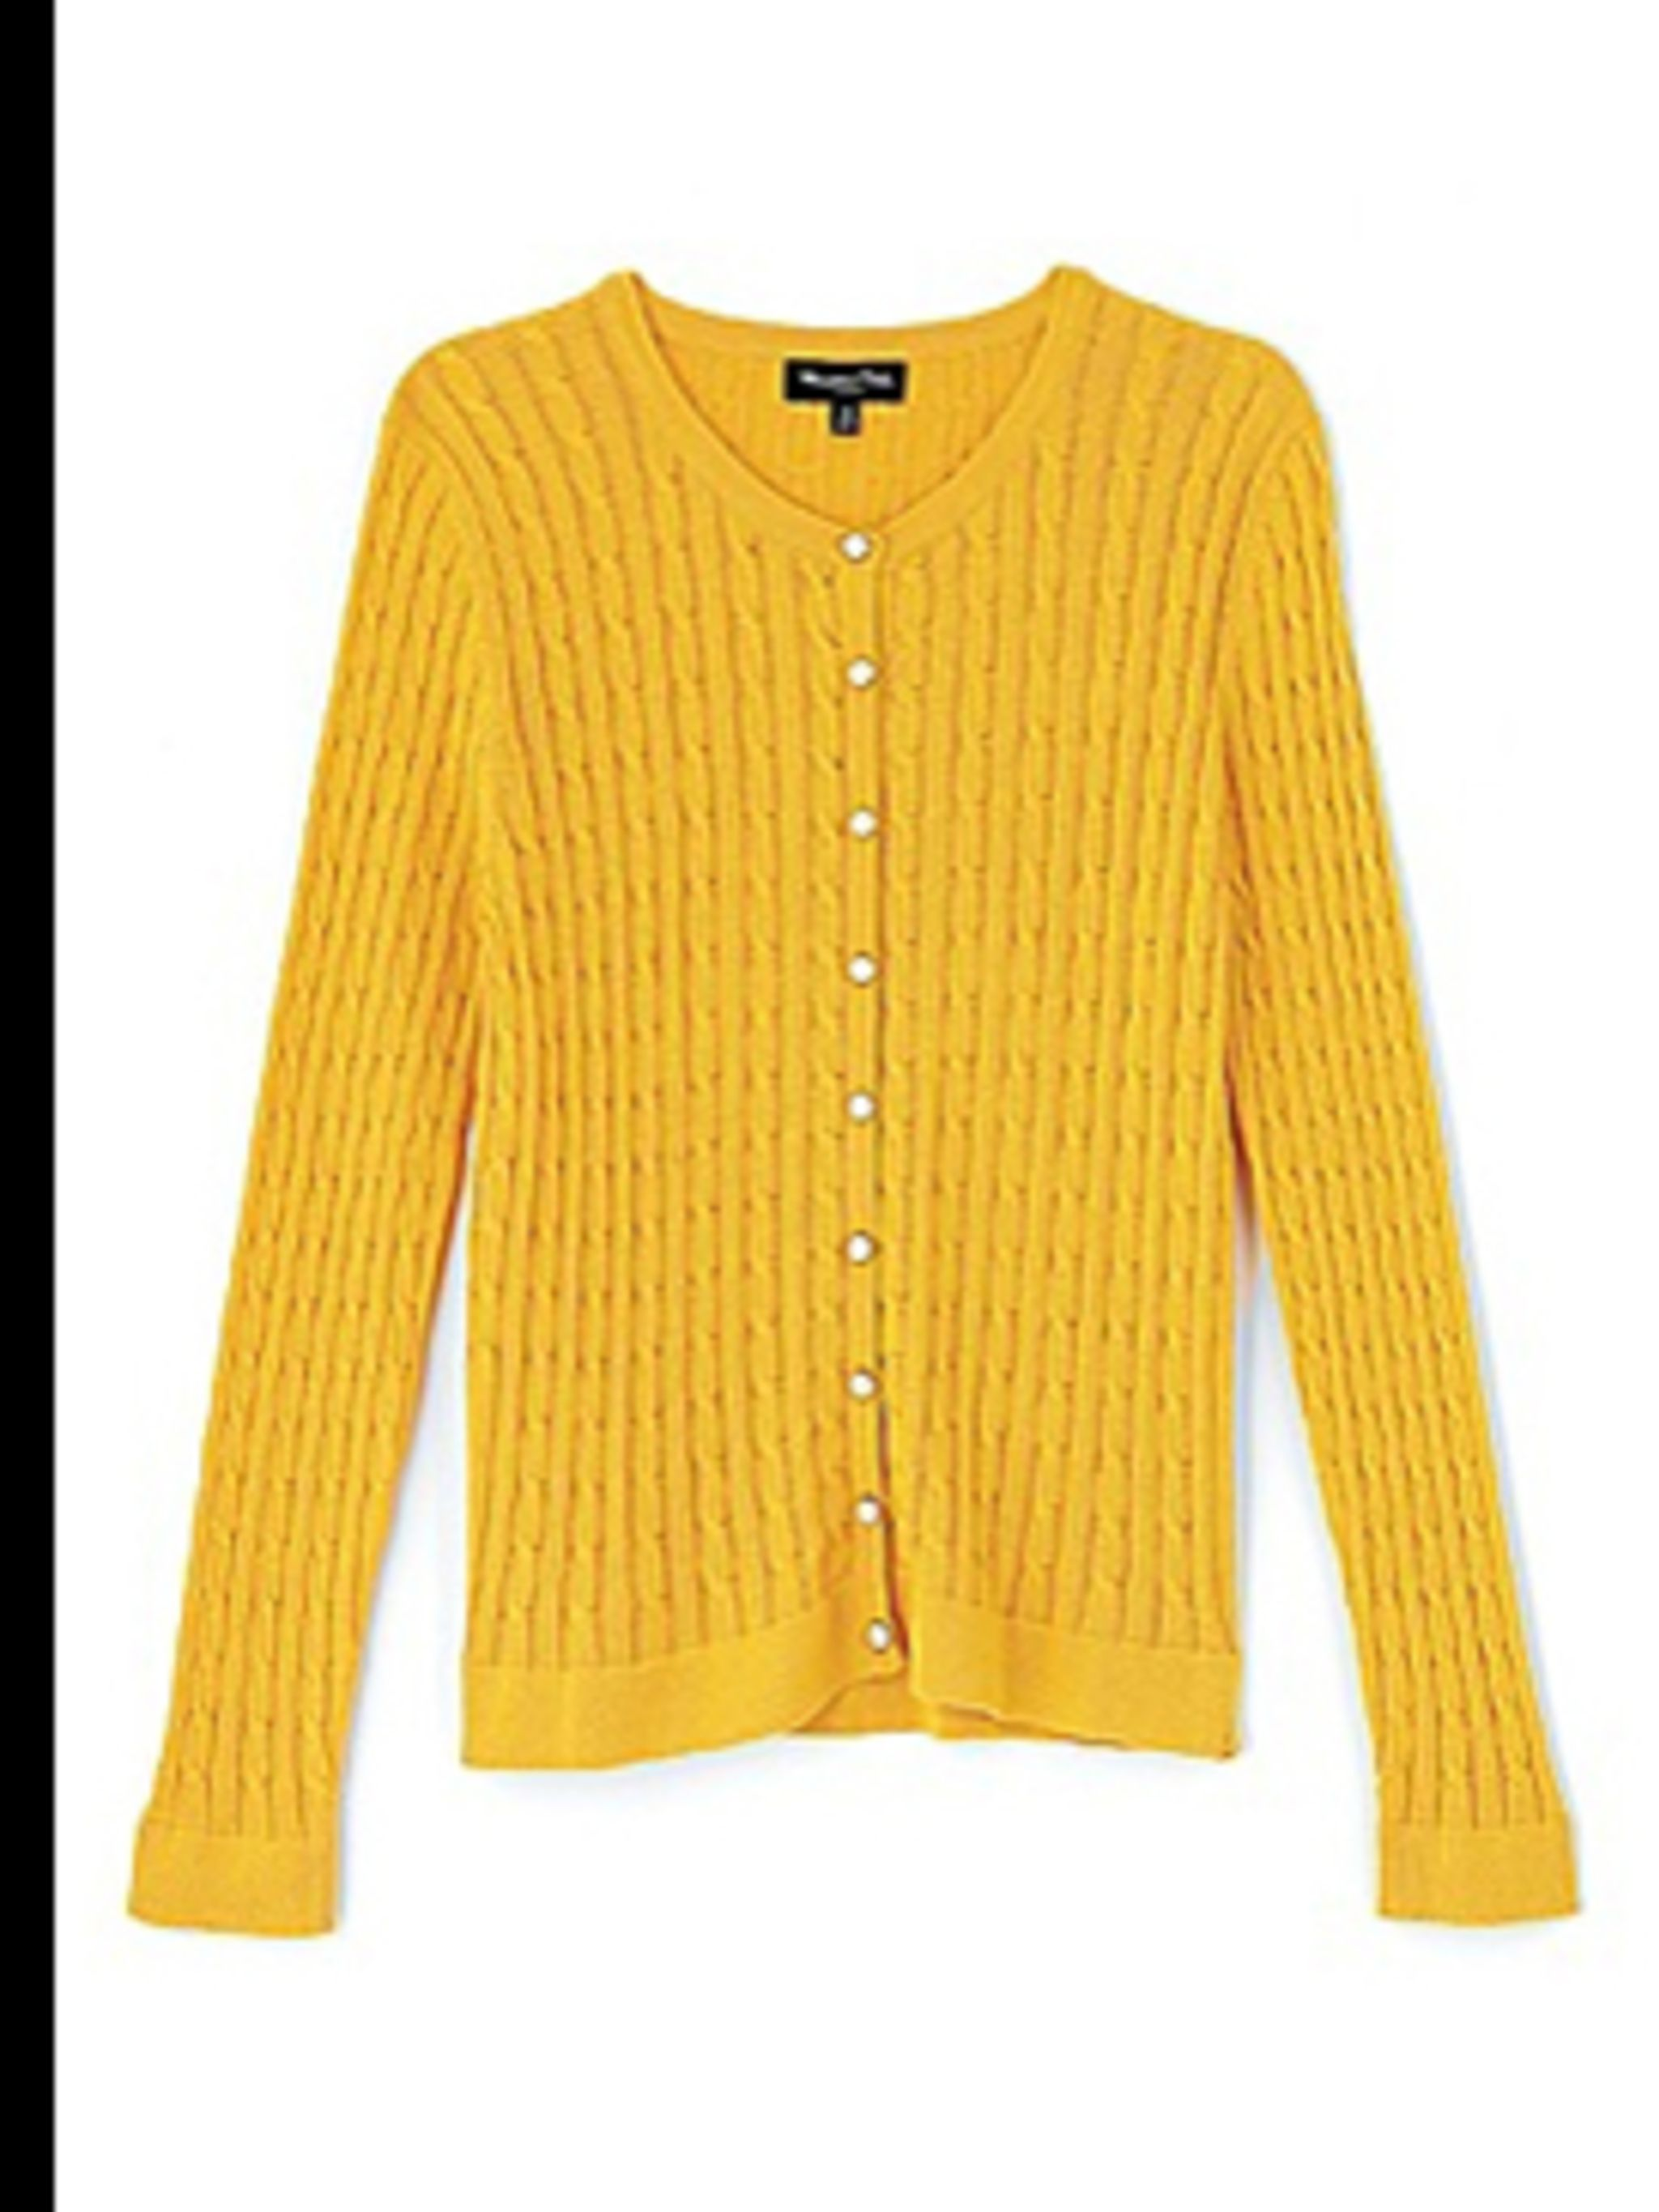 <p>Canary yellow fine cable knit cardigan, £45, by Massimo Dutti, for stockists call (0207 851 1280)</p>